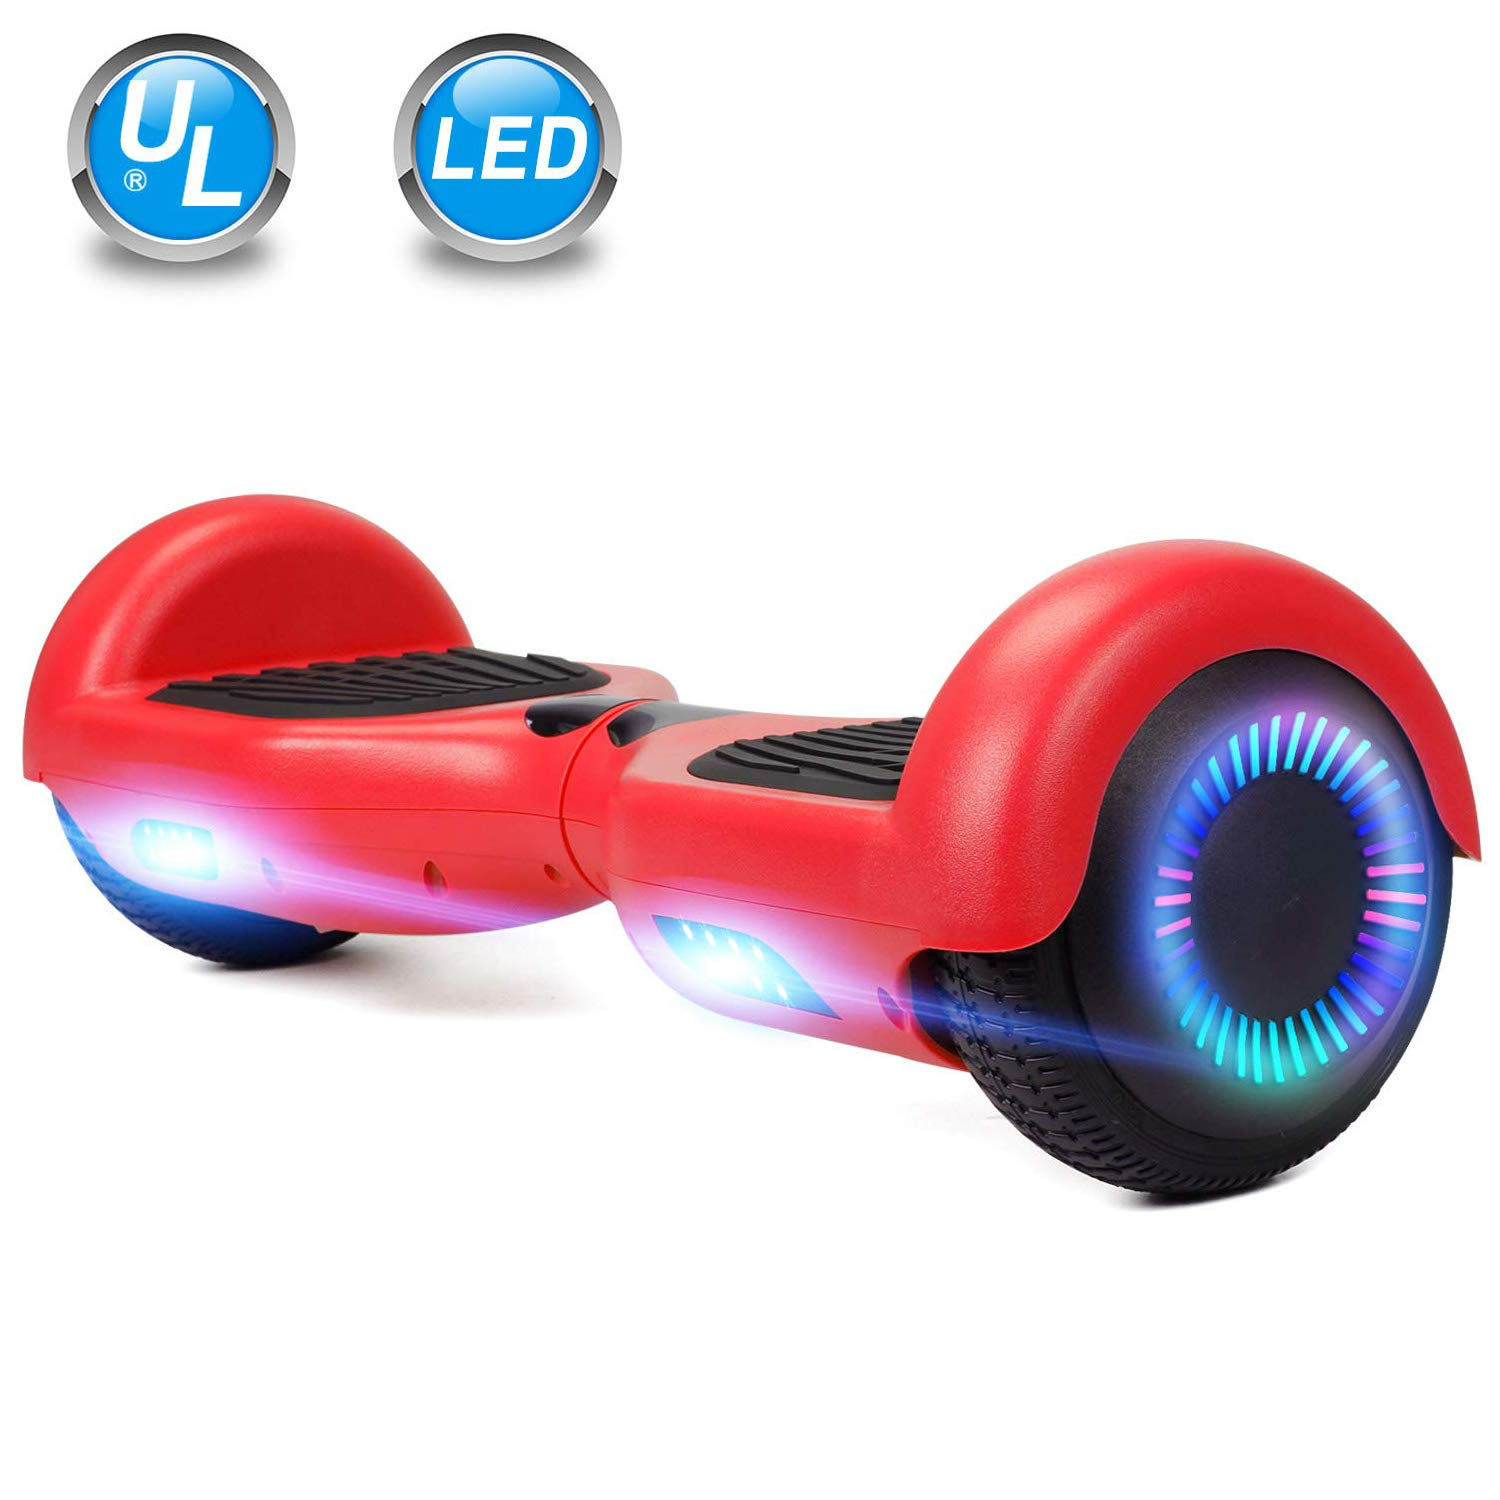 UNI-SUN 6.5'' Hoverboard for Kids, Two Wheel Self Balancing Electric Scooter, Hoverboard with LED Lights for Adults, UL 2272 Certified Hover Board(Classic Red)